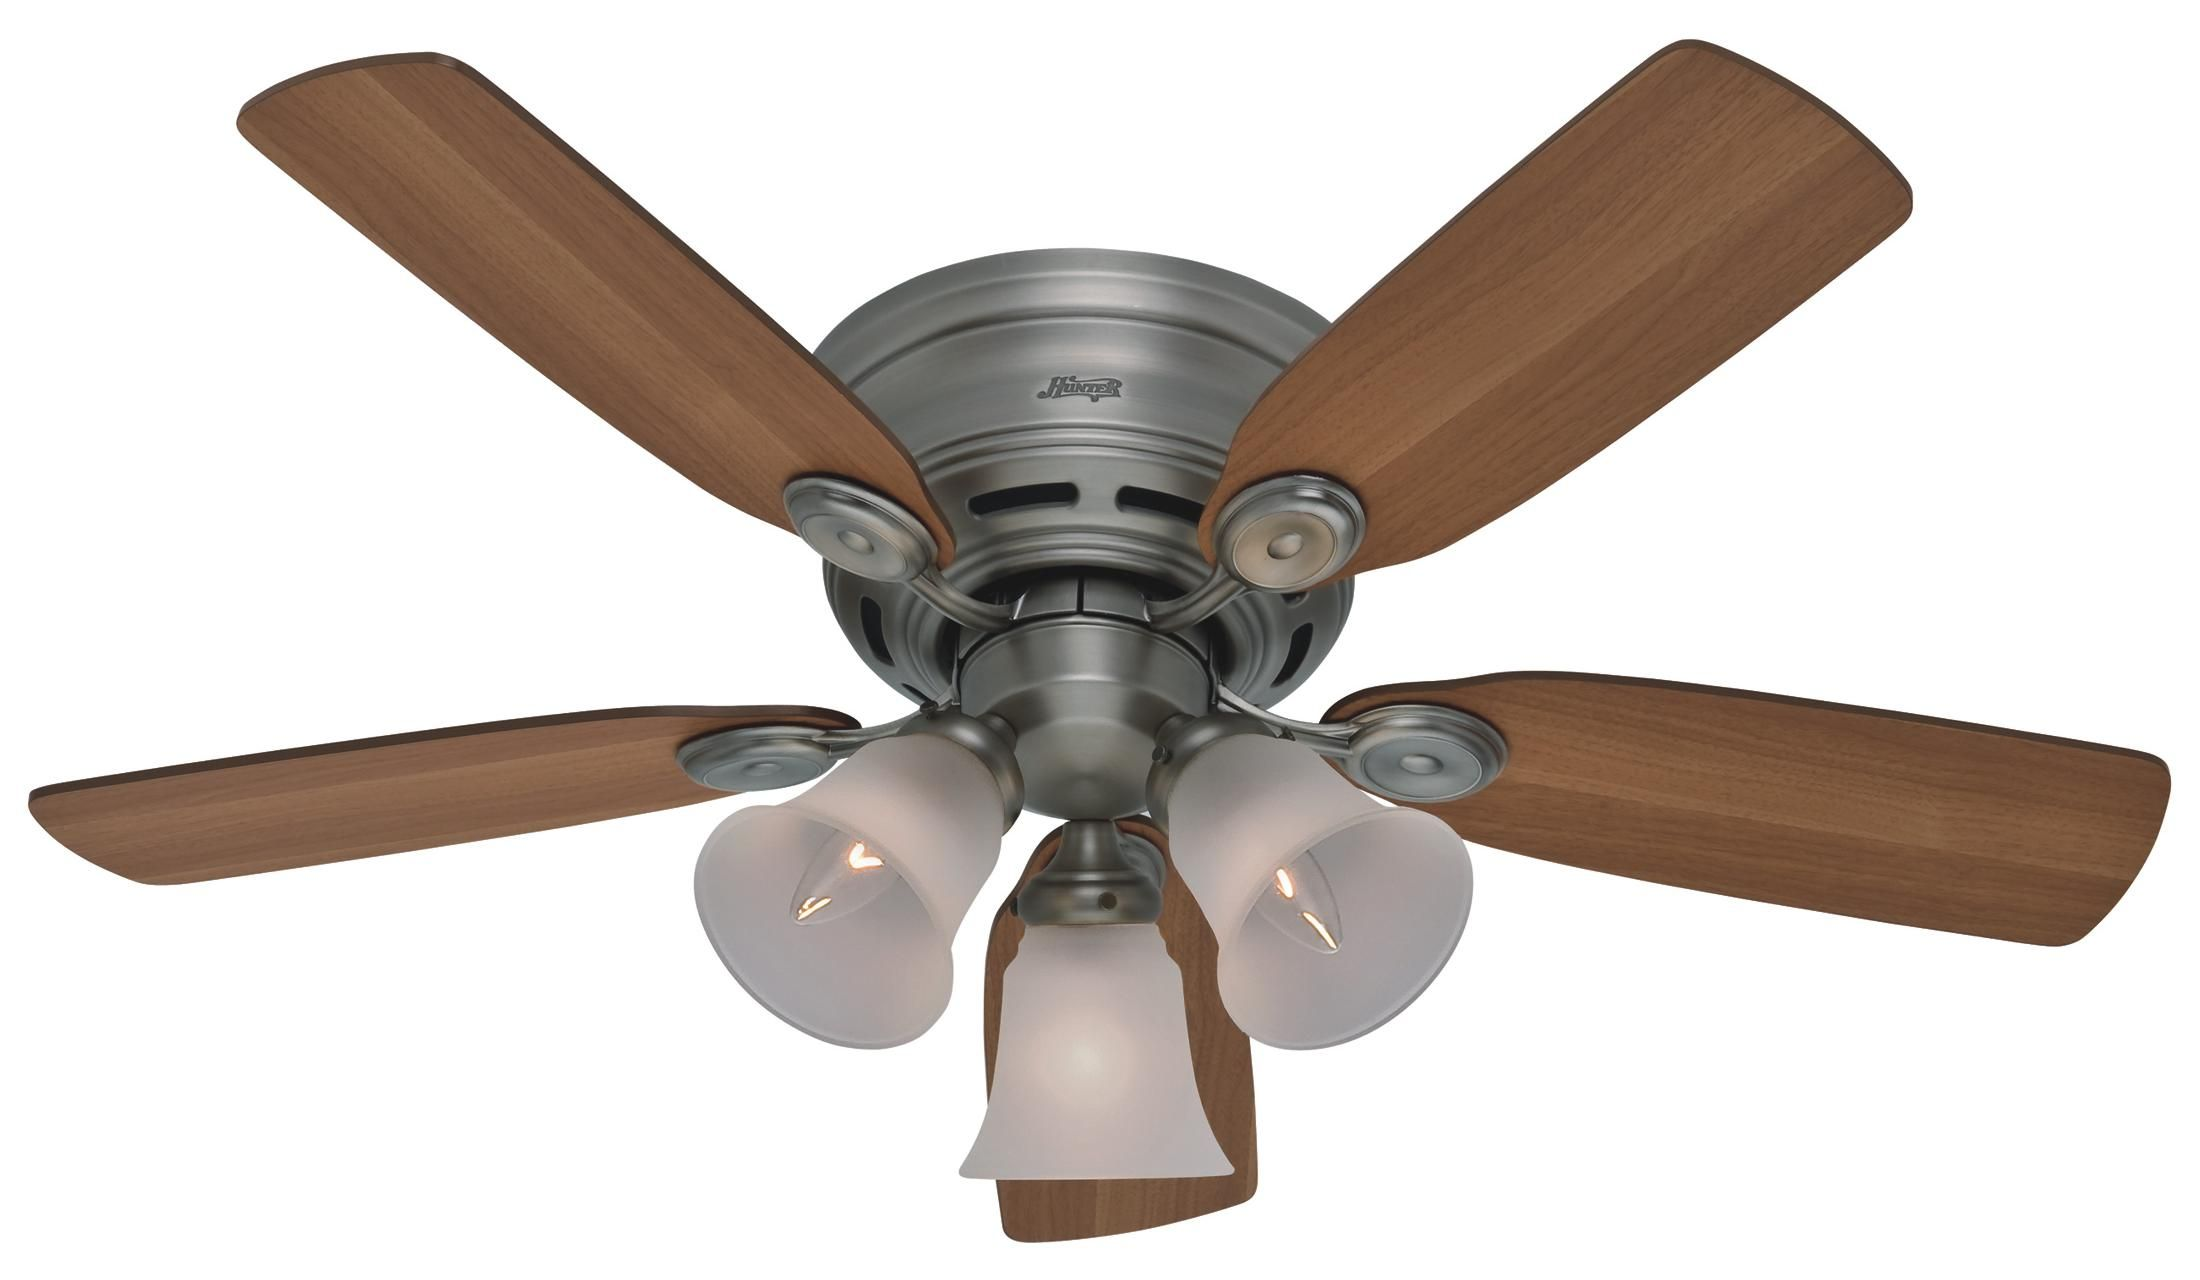 Hunter 42 Ceiling Fan Model Wind Speed 1 58 MPH 139 38 LFM